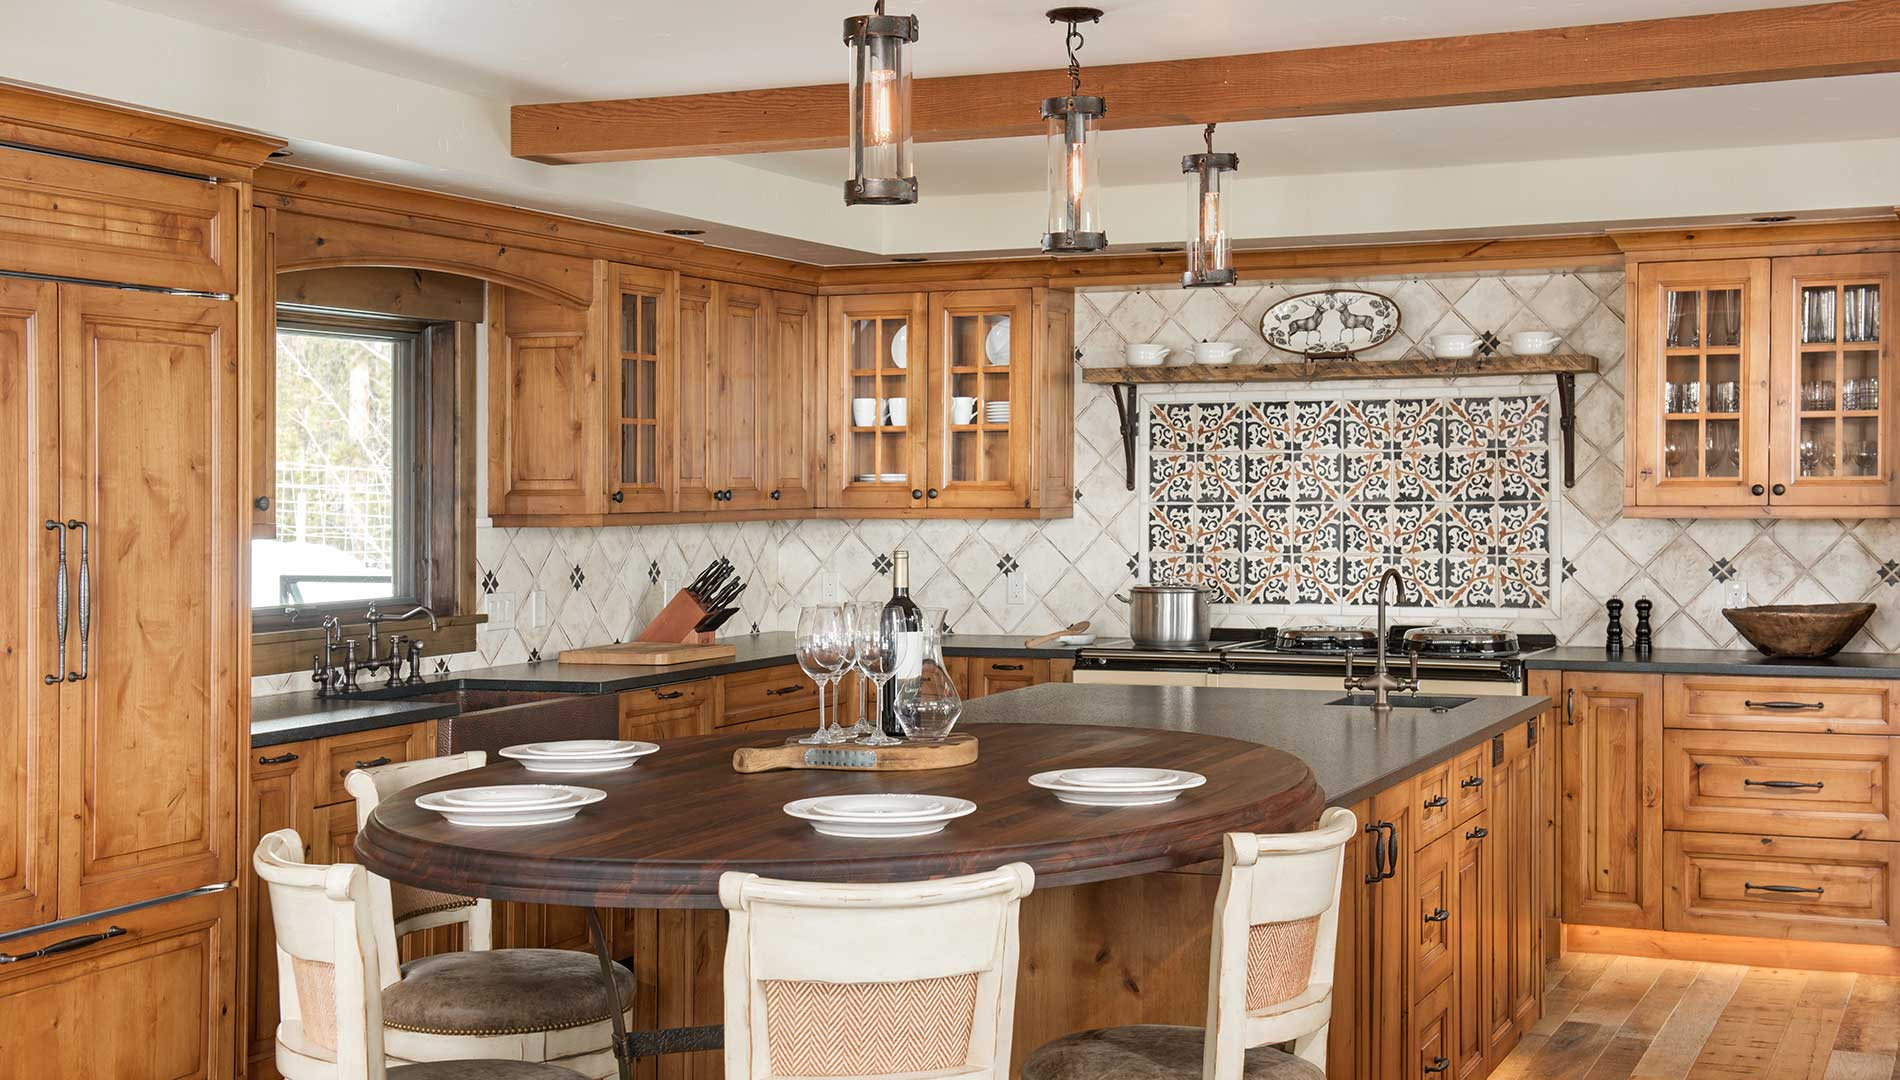 warm toned kitchen of Moonlight residence designed by Elizabeth Robb Interiors